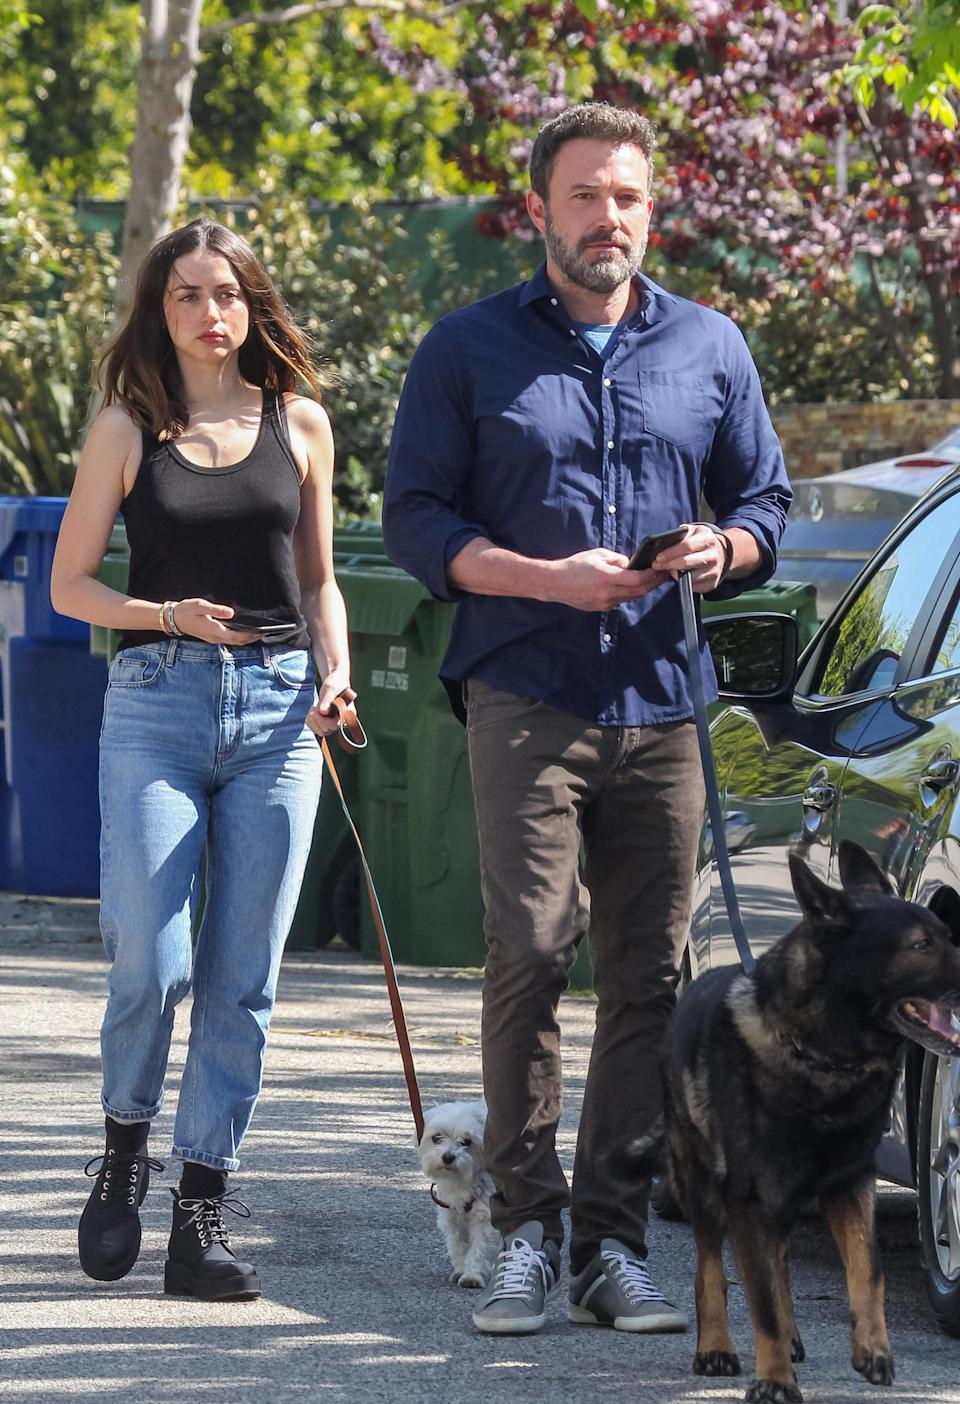 "<p><a href=""https://www.popsugar.com/celebrity/ben-affleck-ana-de-armas-break-up-48114270"" class=""link rapid-noclick-resp"" rel=""nofollow noopener"" target=""_blank"" data-ylk=""slk:Ana and Ben decided to part ways"">Ana and Ben decided to part ways</a> after nearly one year together in January. According to <b>People</b>, Ana was the one who ""broke it off."" A source added, ""Their relationship was complicated. Ana doesn't want to be Los Angeles-based and Ben obviously has to, since his kids live in Los Angeles.""</p>"